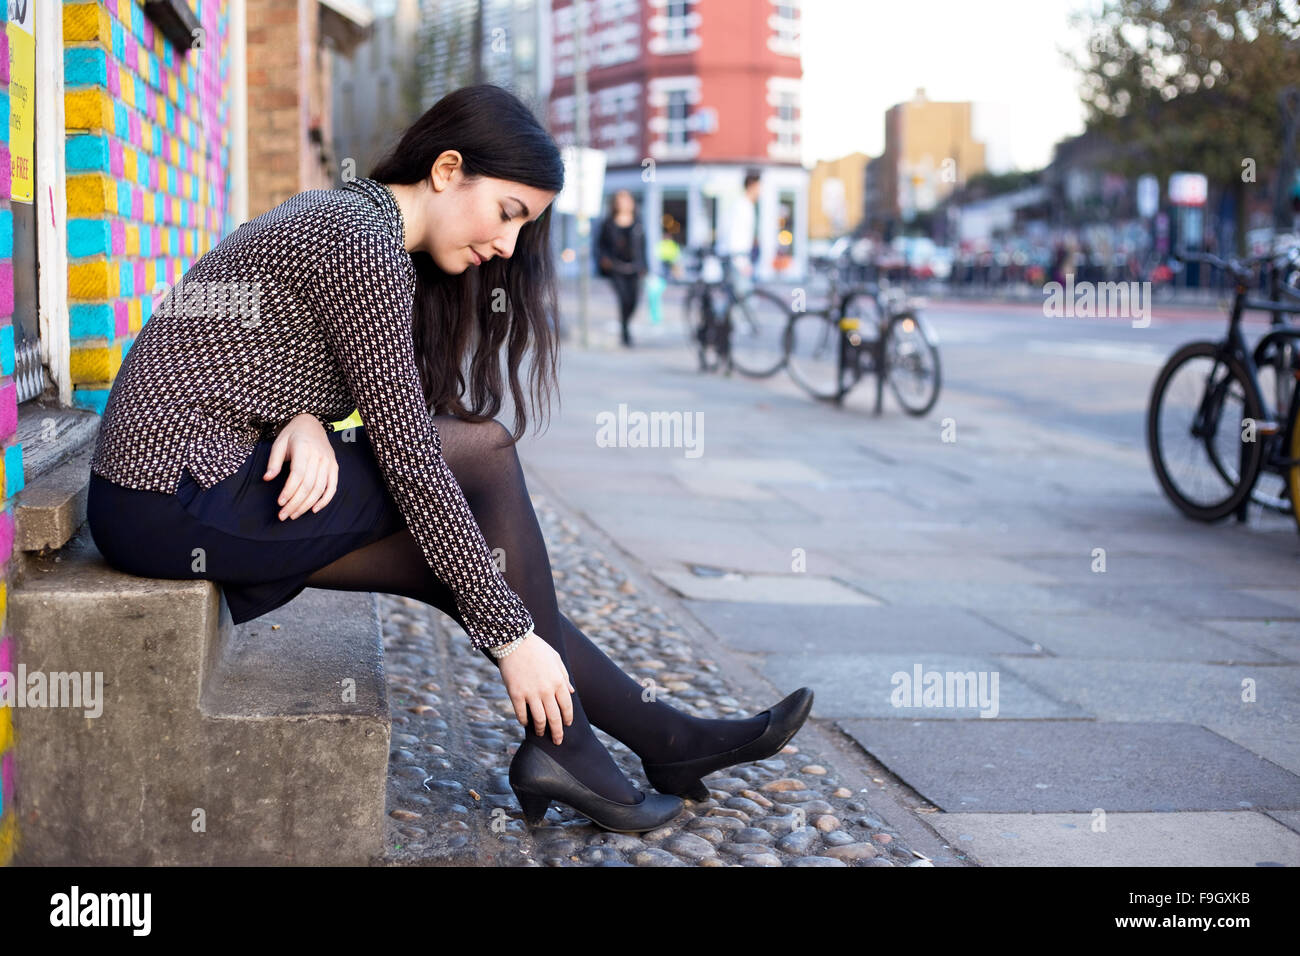 young woman in the street feeling pain in her ankle - Stock Image